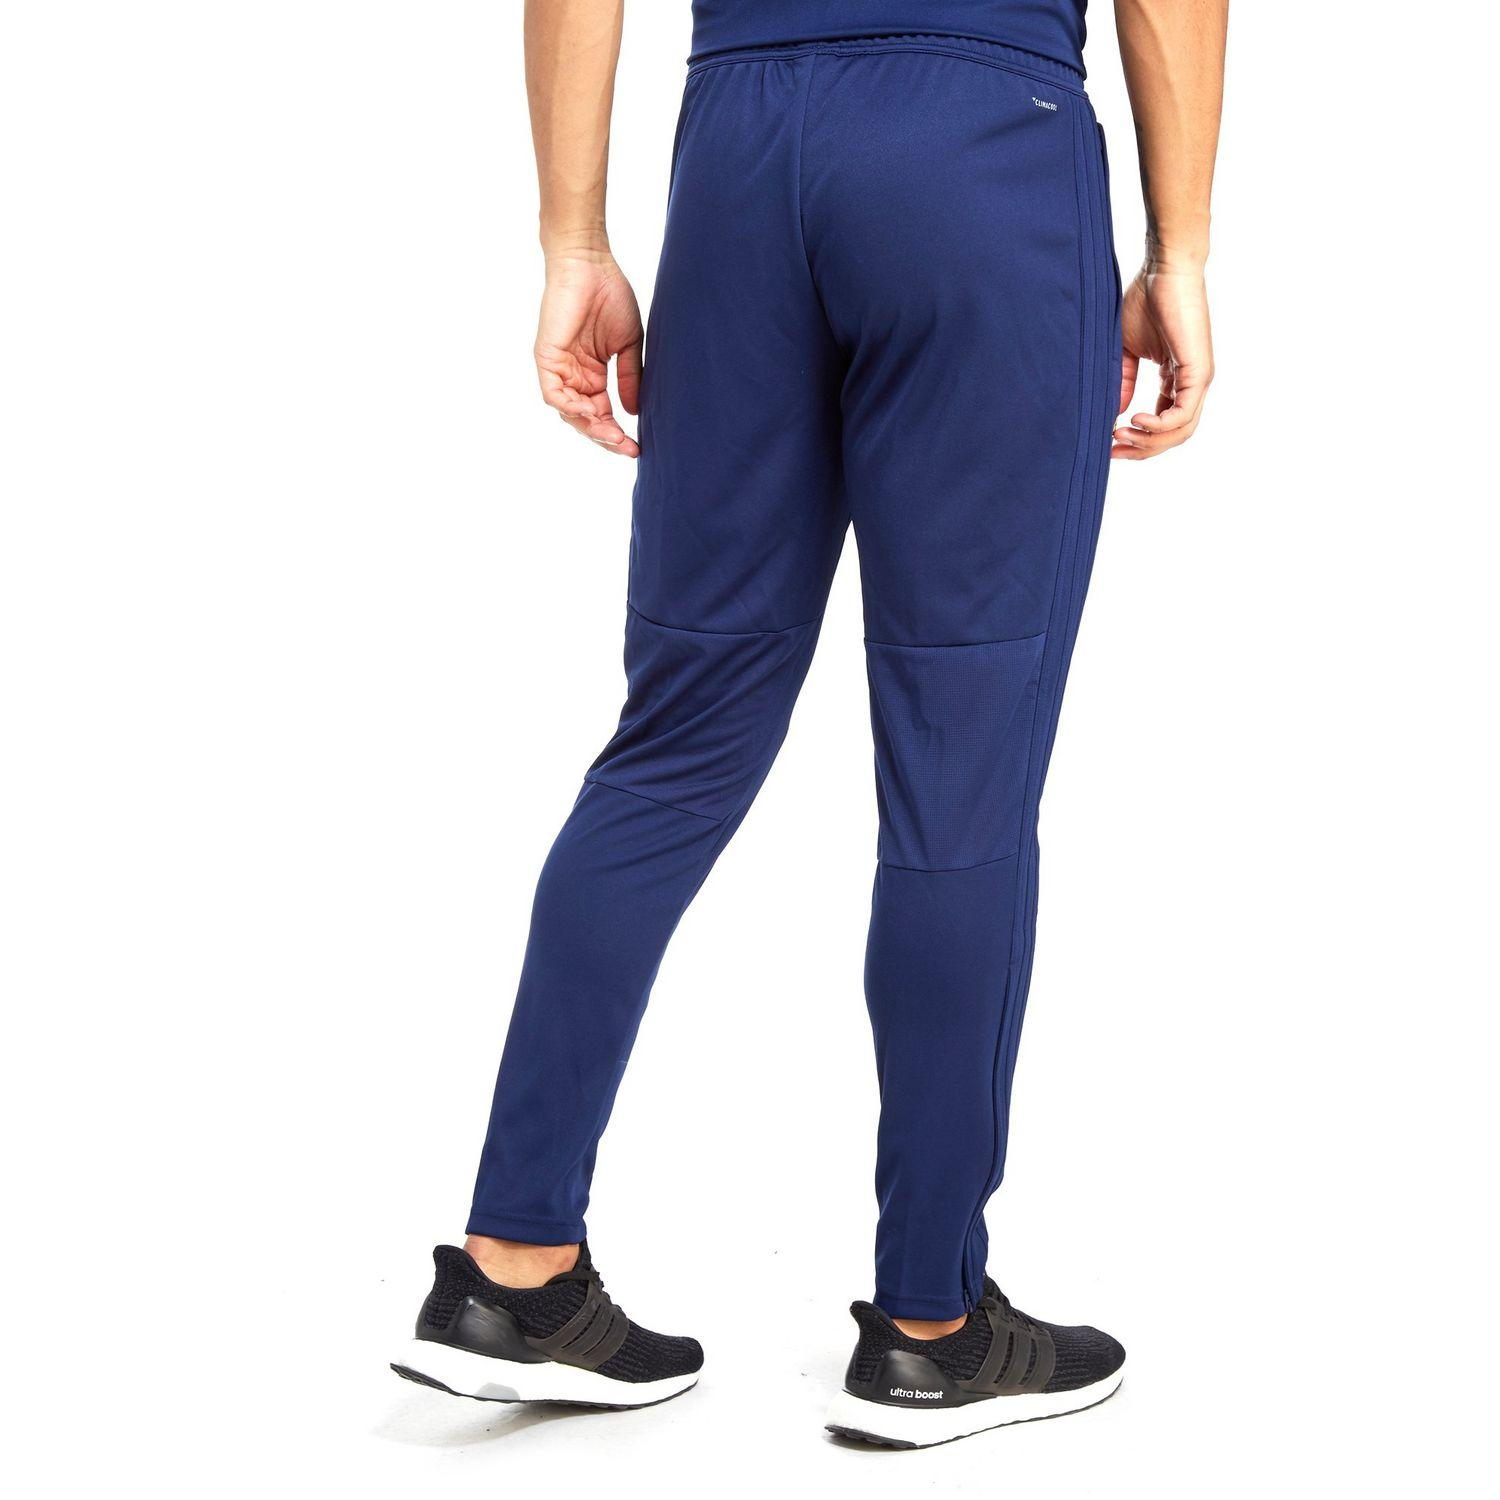 b8d5340a86d Lyst - adidas Northern Ireland 2018 19 Training Pants in Blue for ...